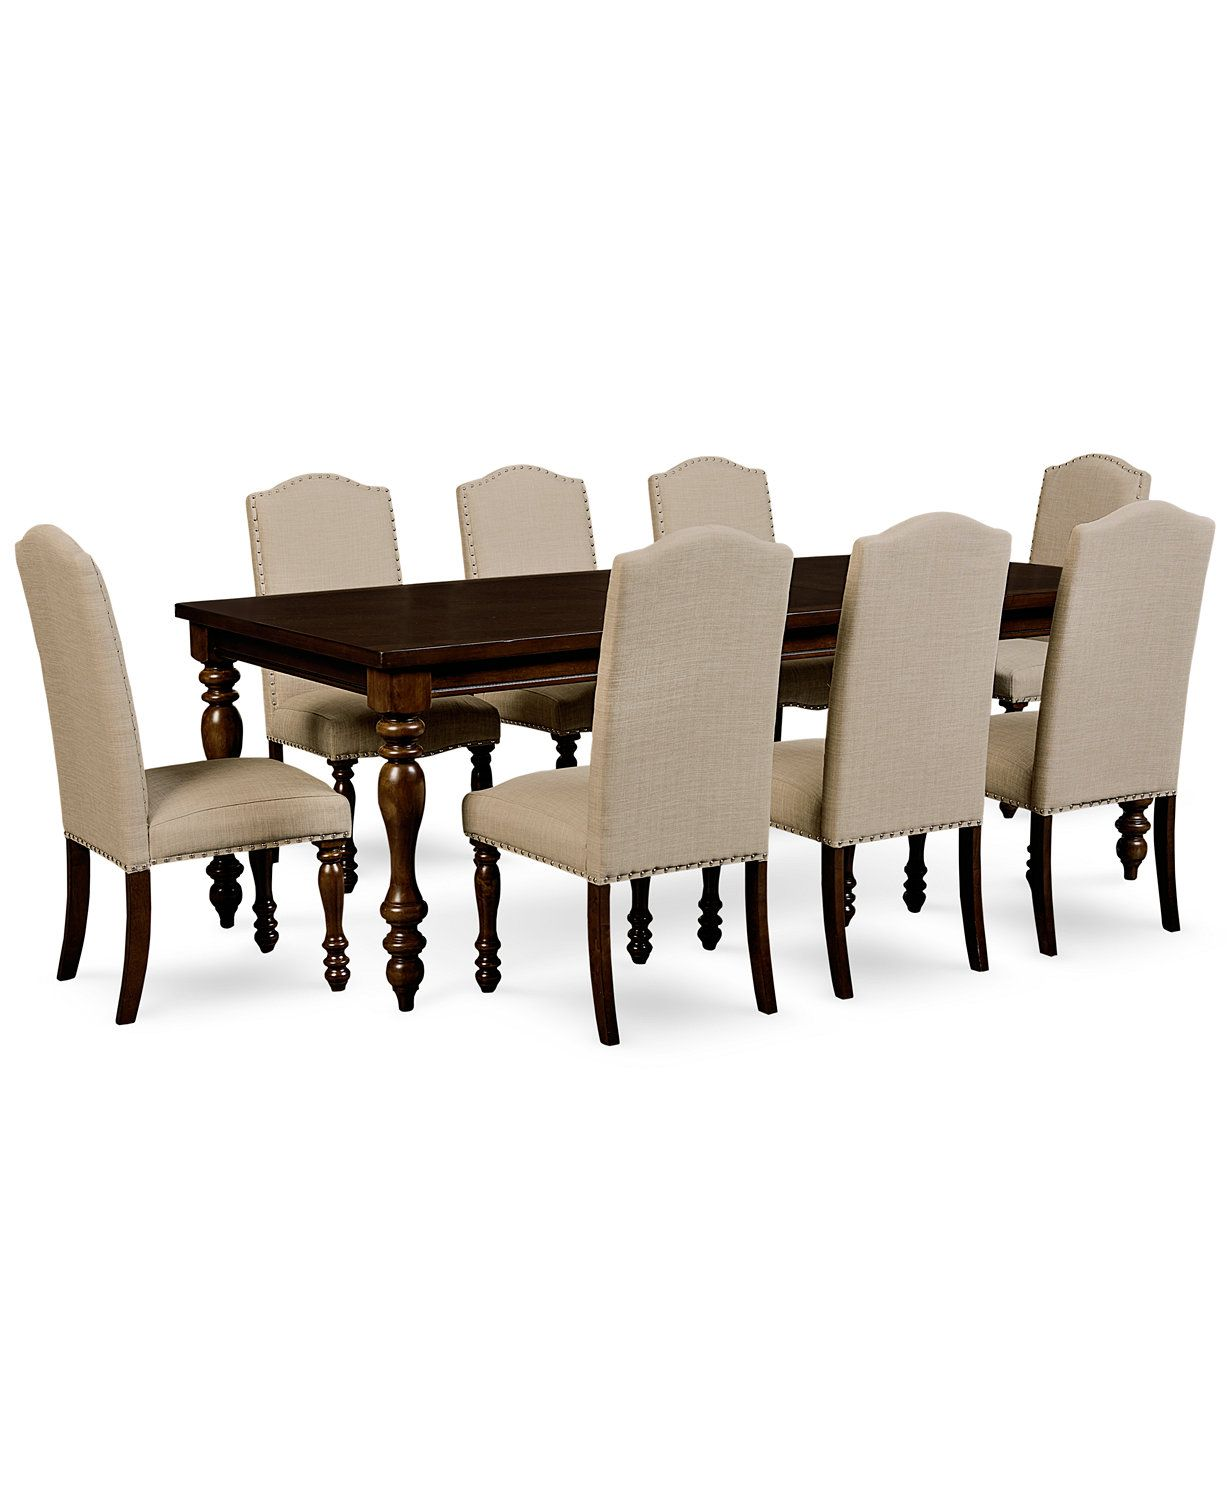 kelso 9-pc. dining set (dining table and 8 side chairs) | macys, Esstisch ideennn